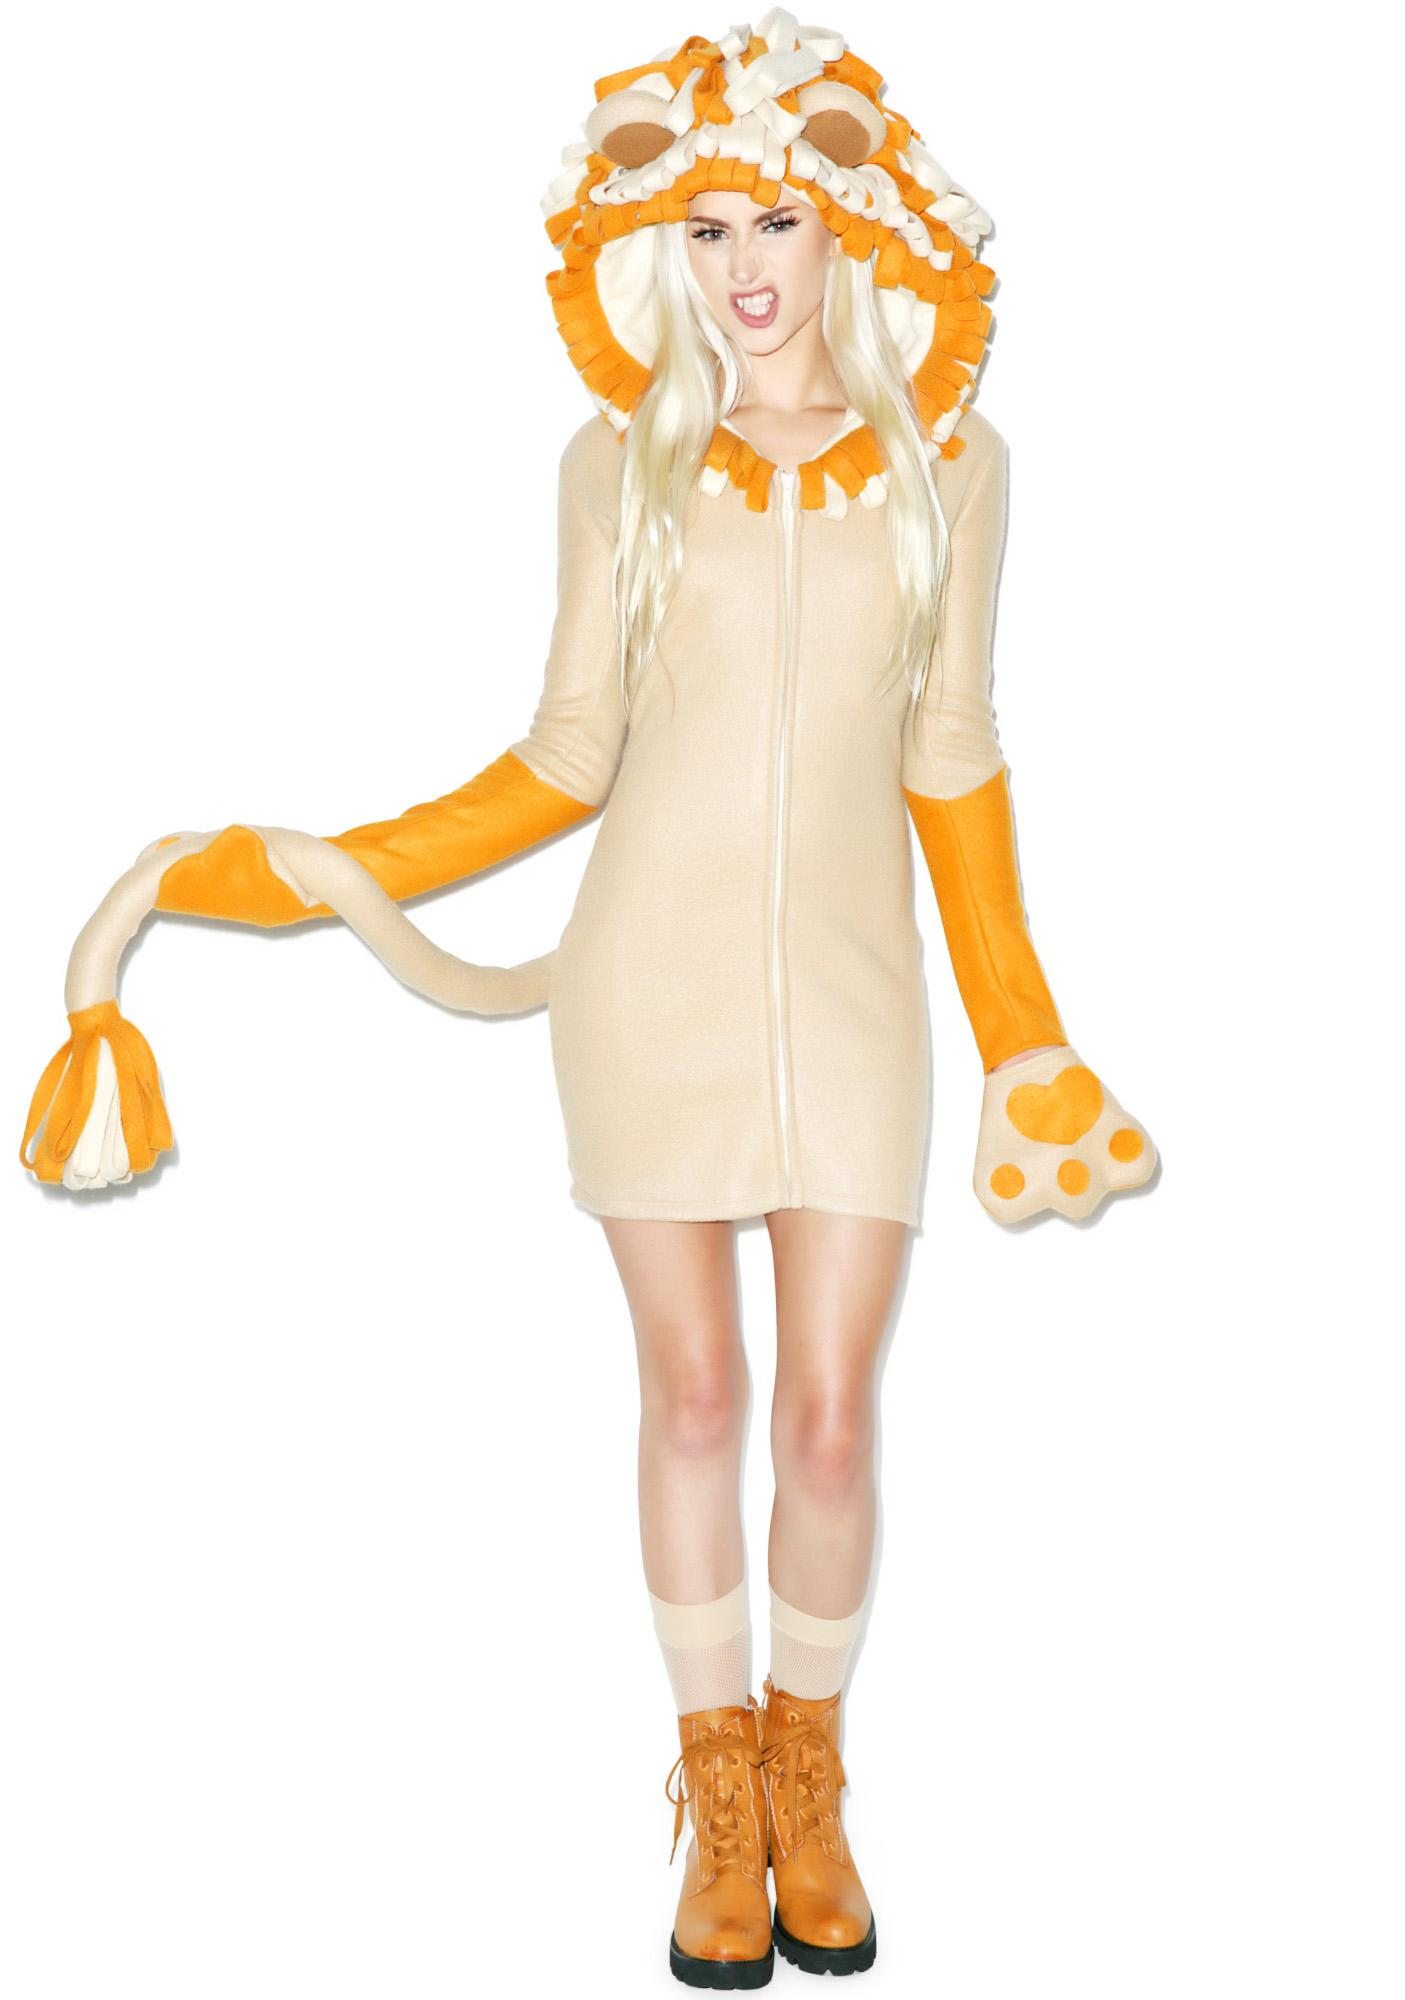 The Mane Event Hoodie Costume